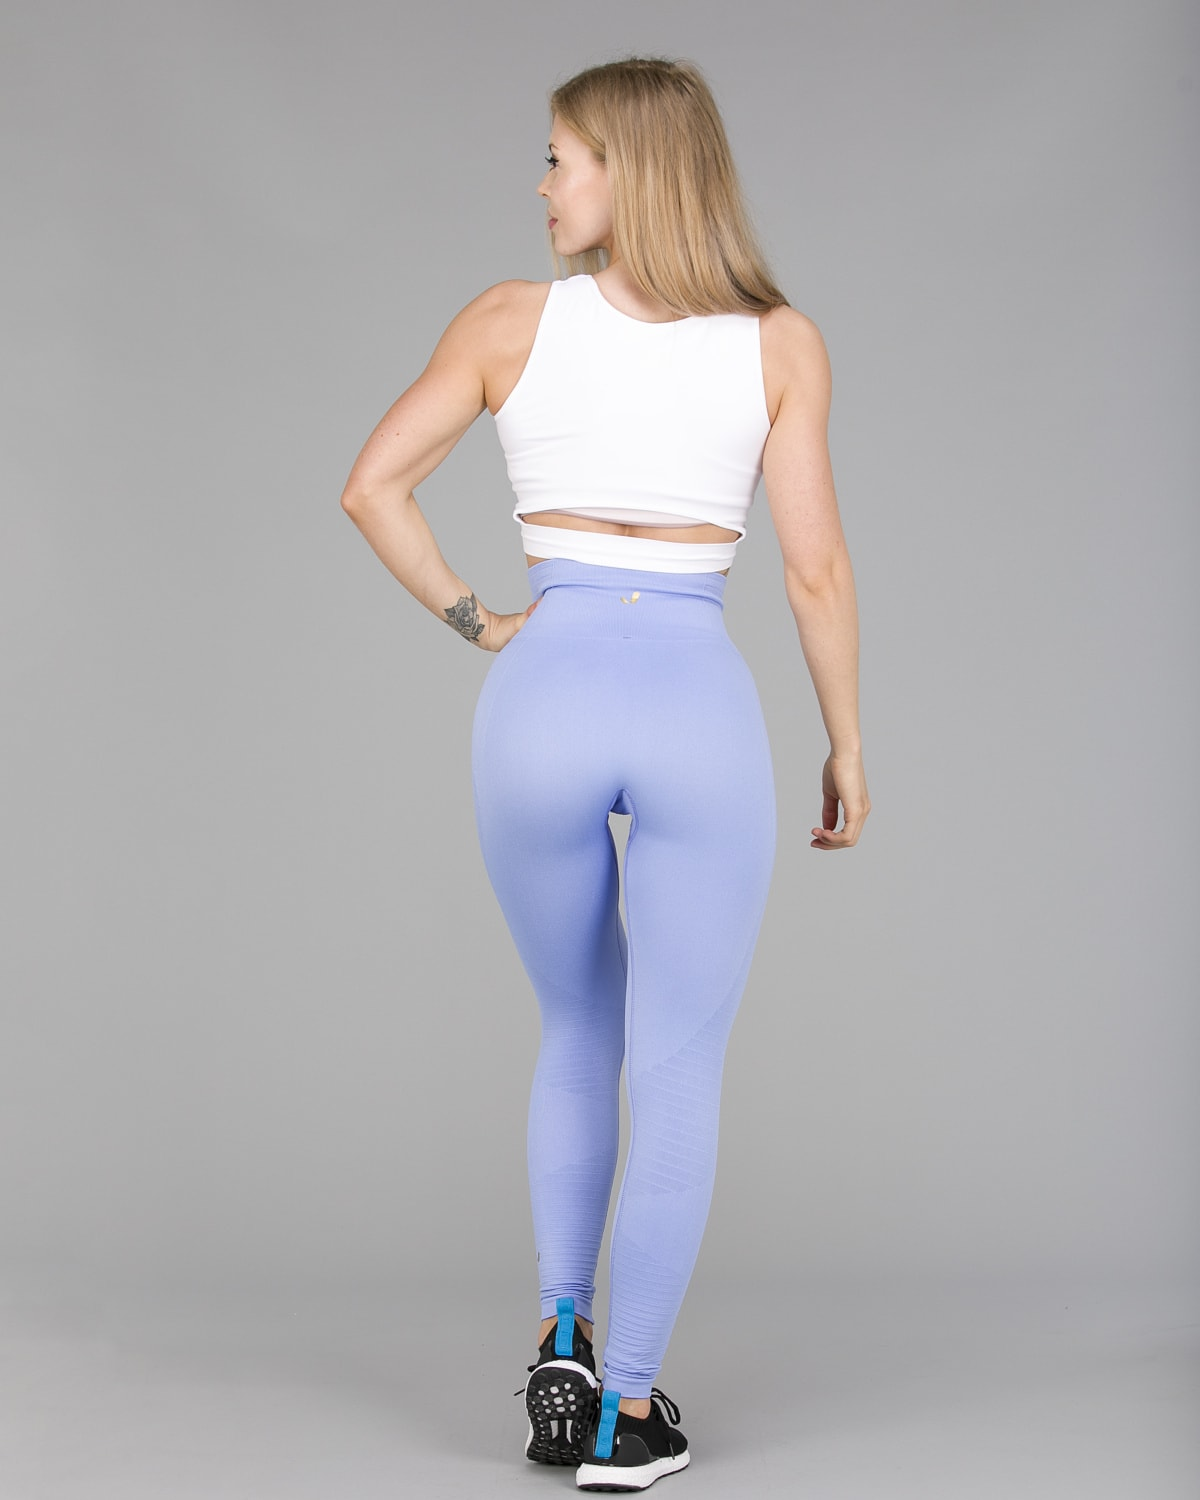 Jerf Gela 2.0 Tights Blue Pastel7